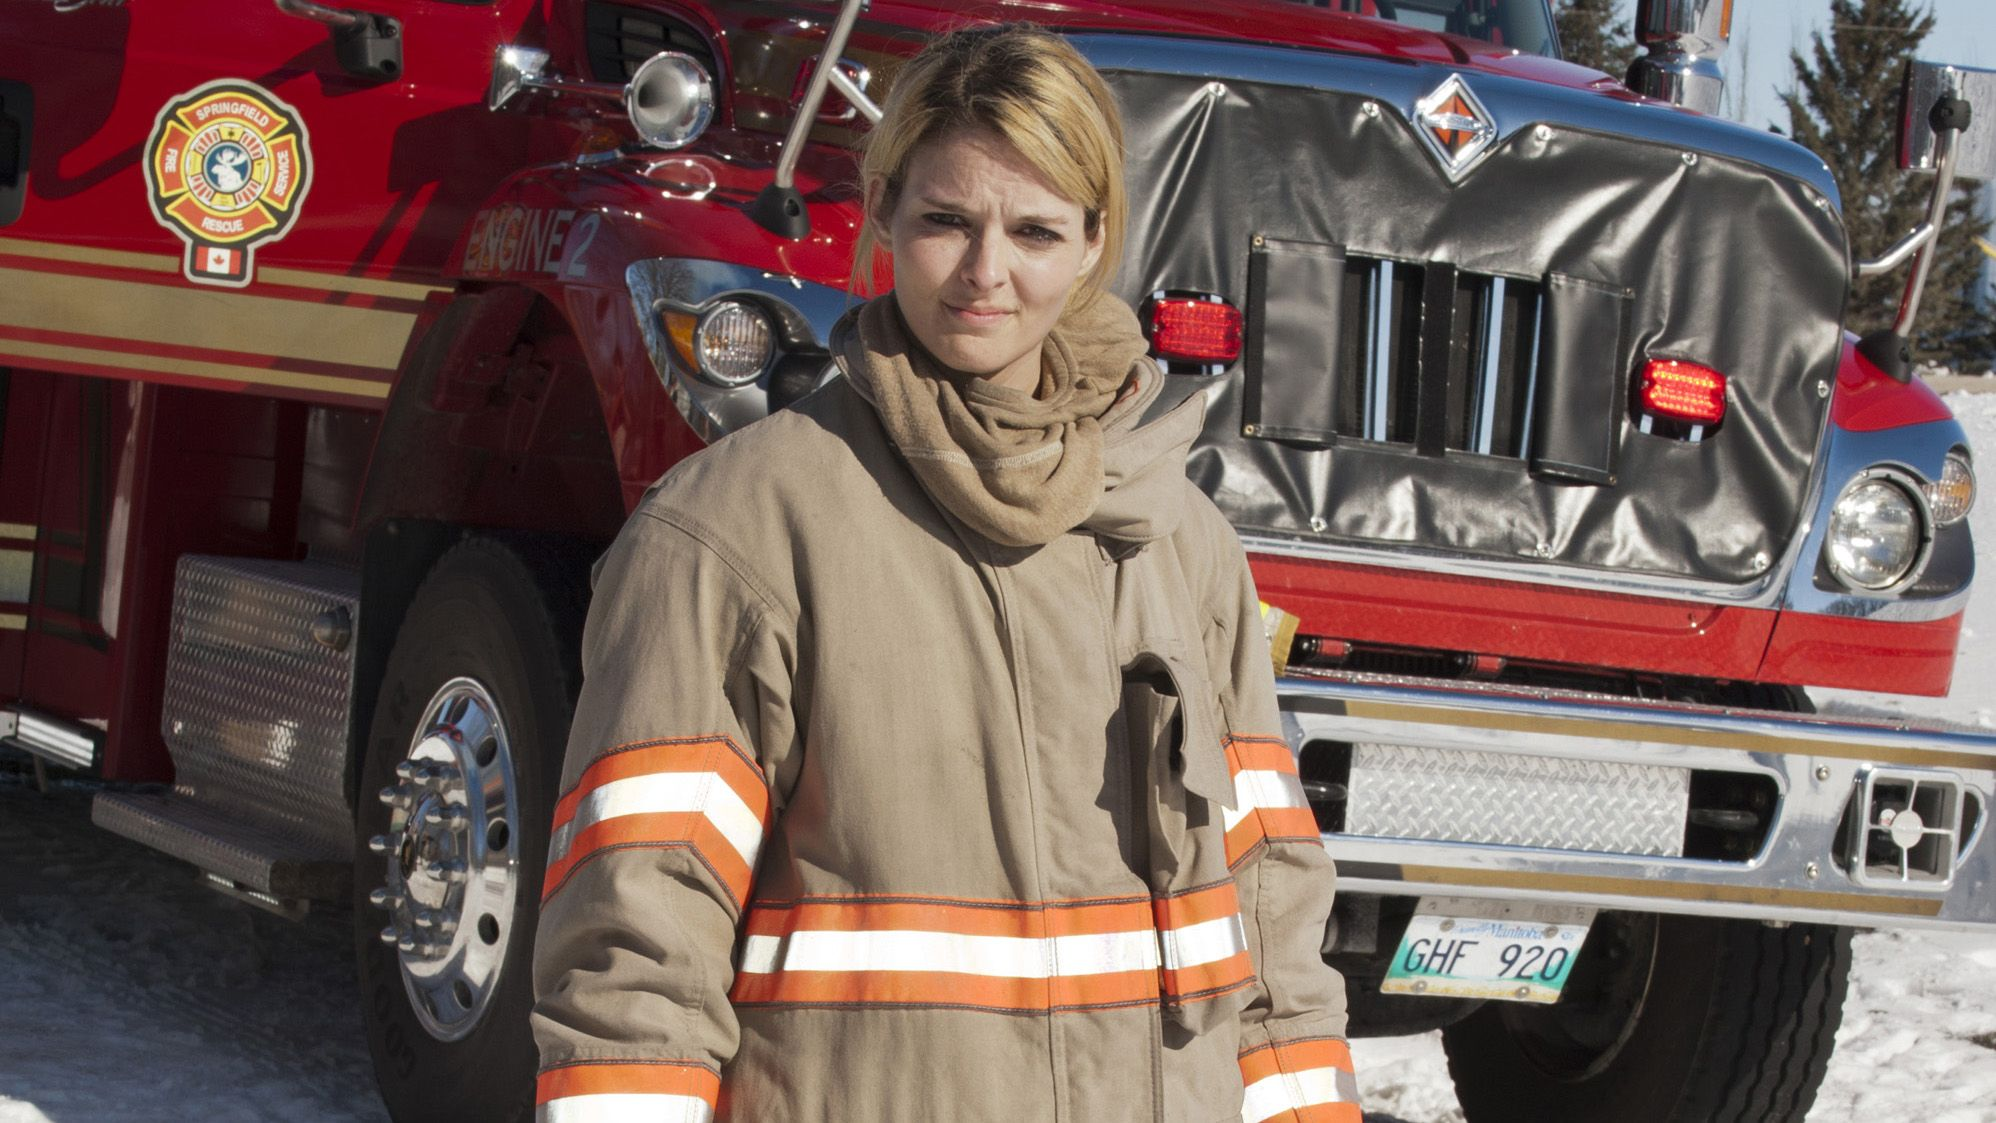 Pin by Extreme Frontiers on Ice Road Truckers | Lisa kelly